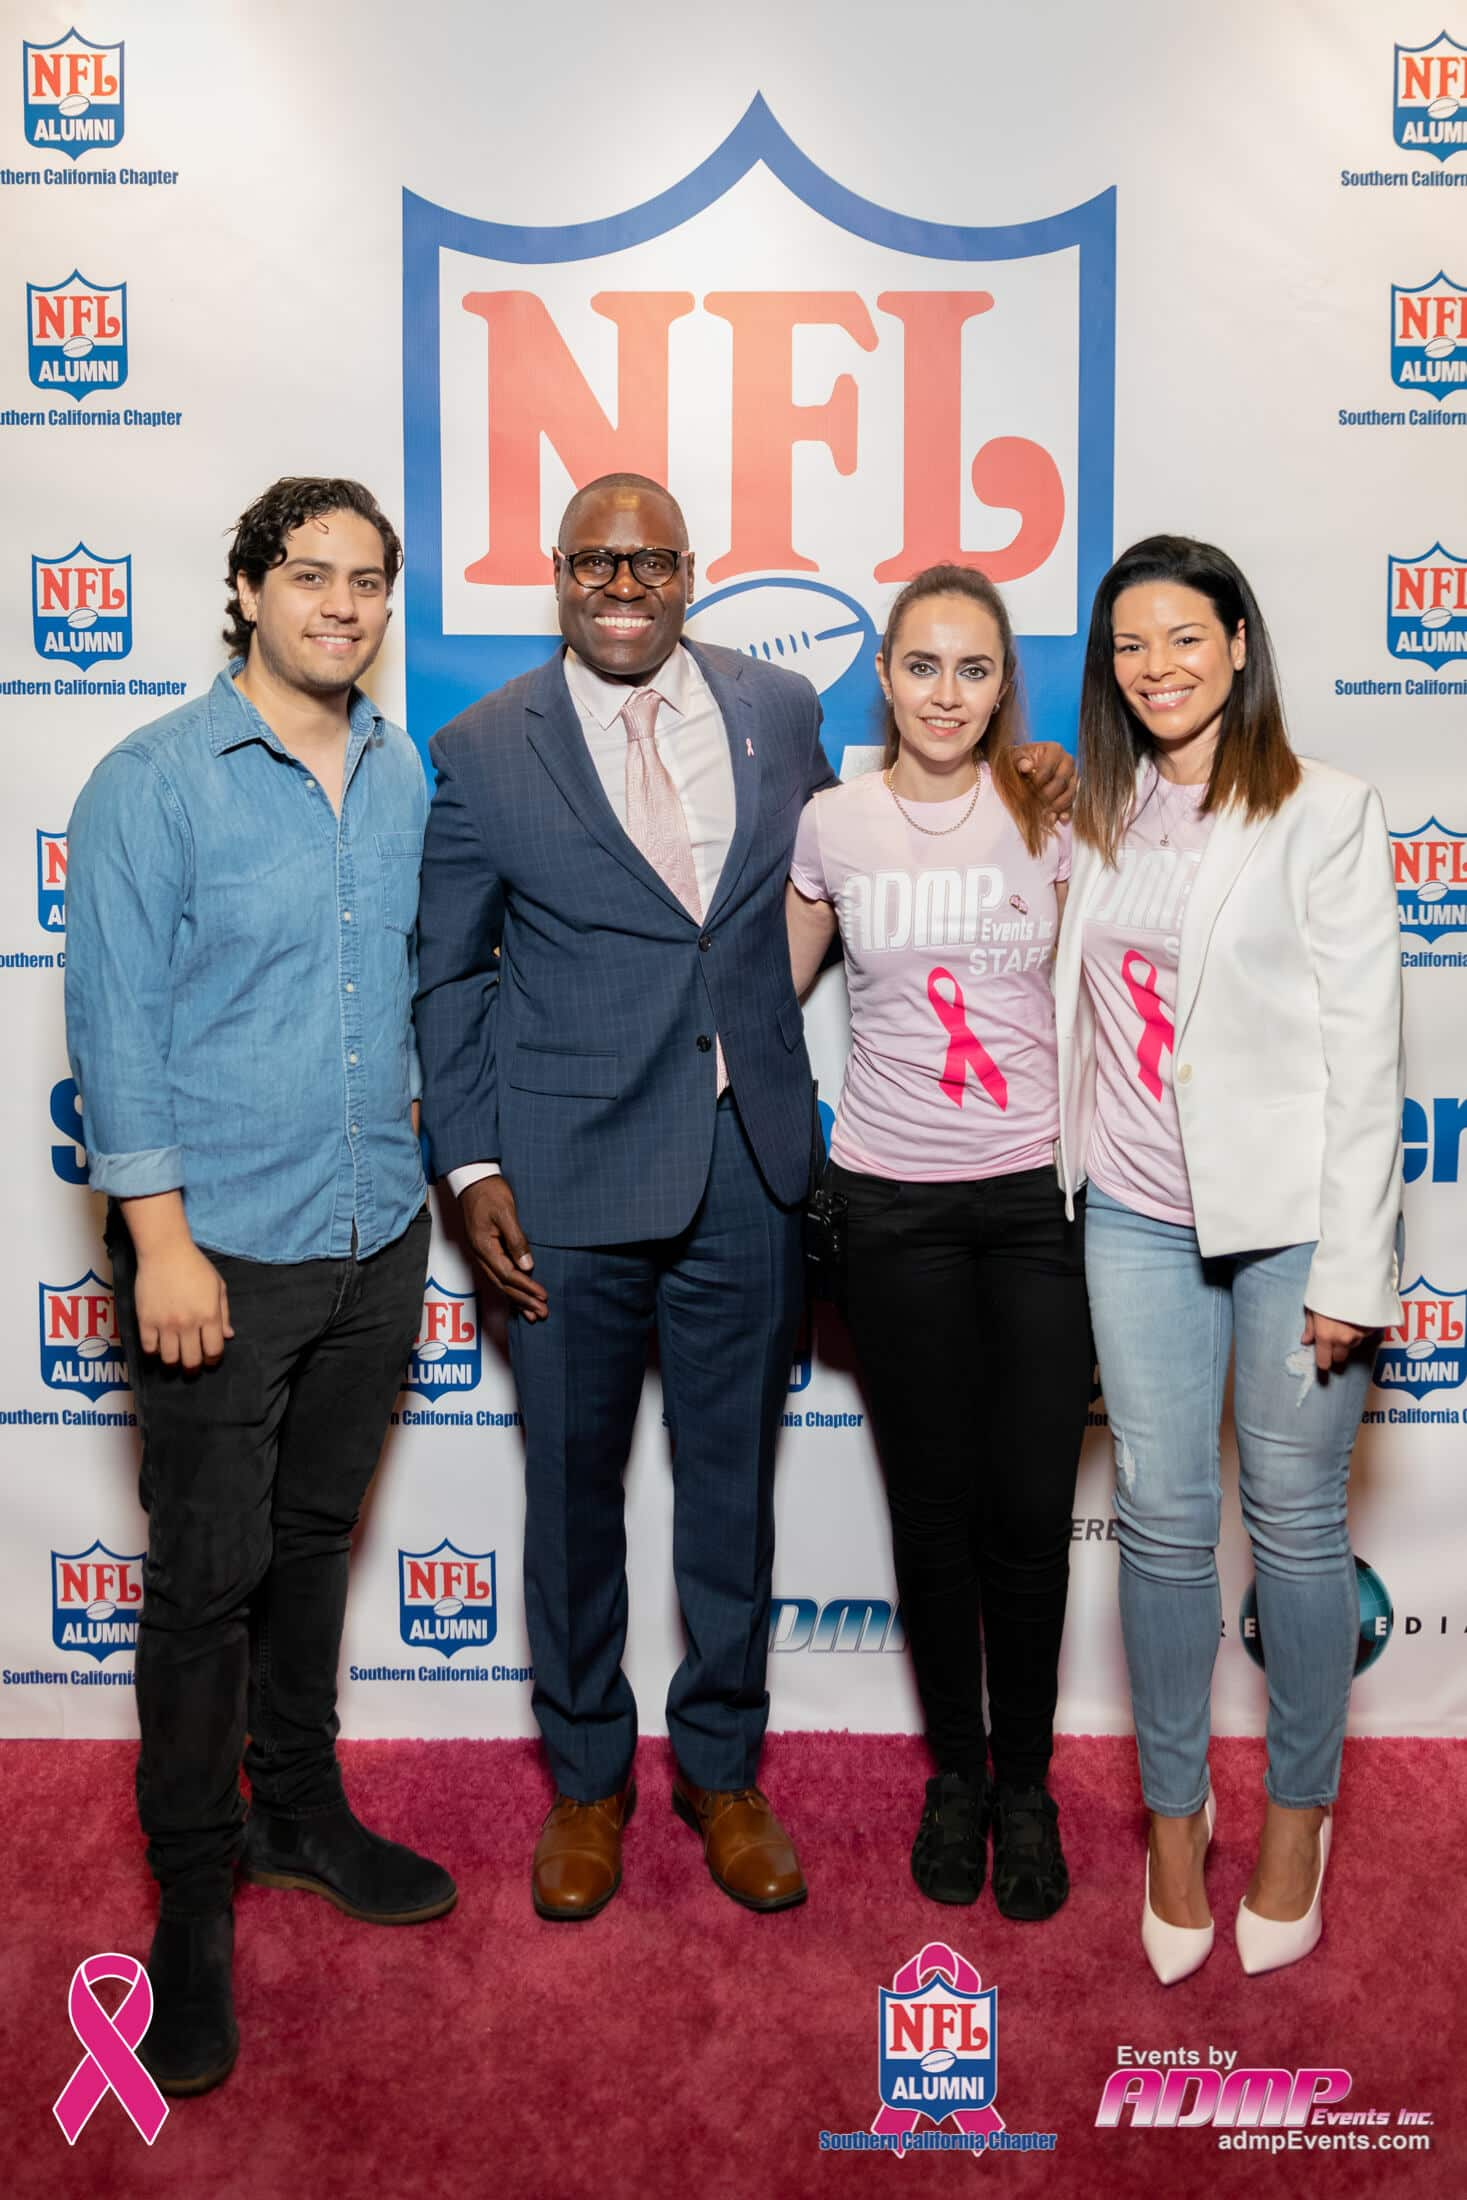 NFL Alumni SoCal Charity Event Series Breast Cancer Event 10-14-19-222